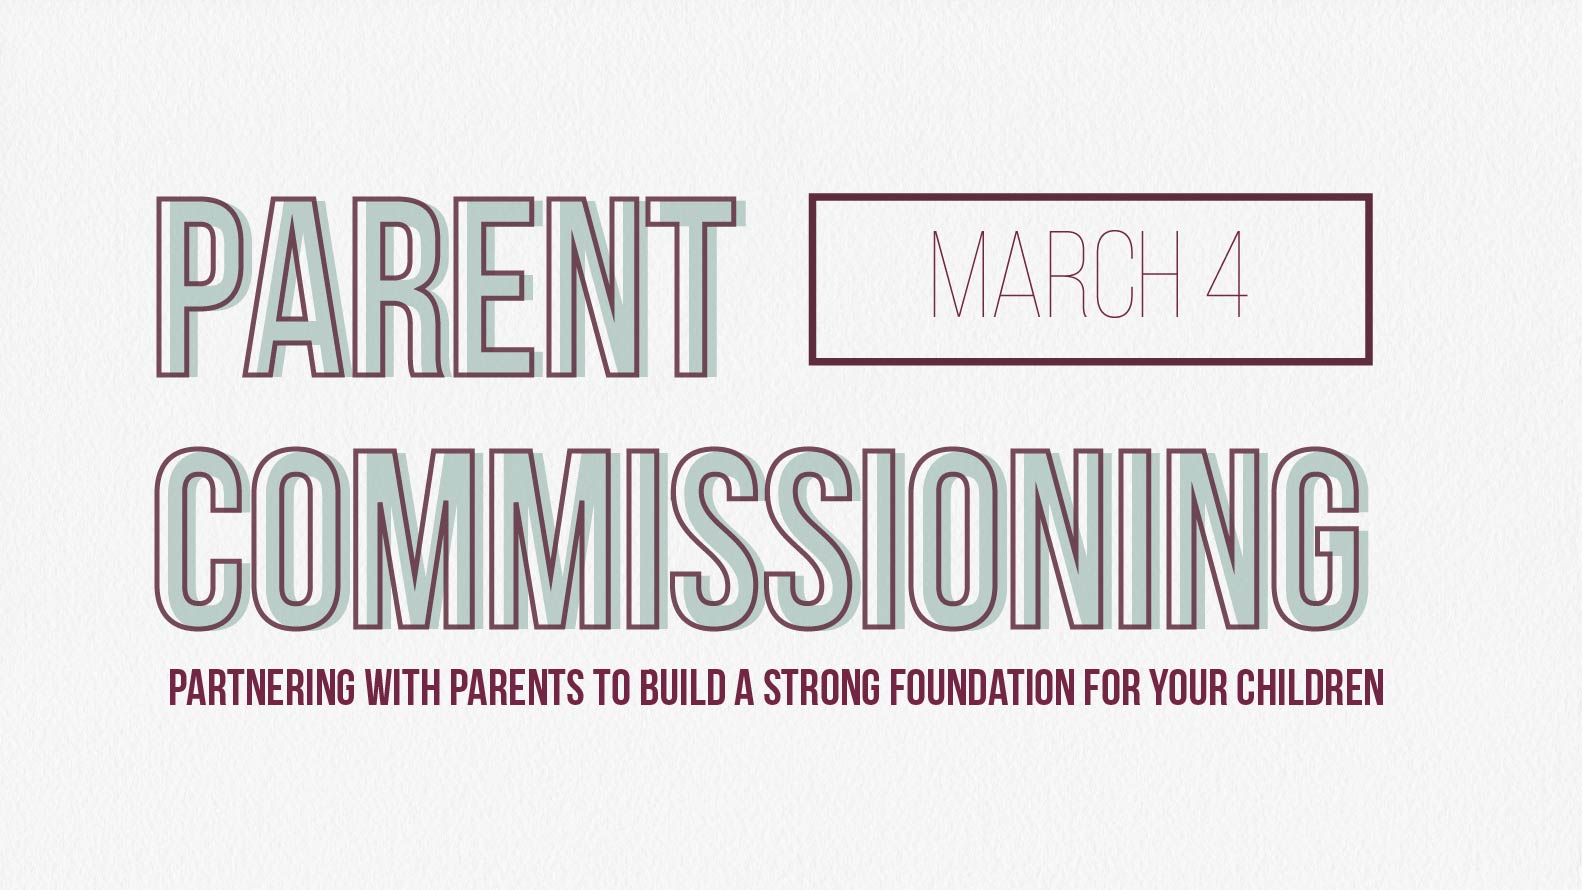 Parent commissioning web and monitor march 4 website